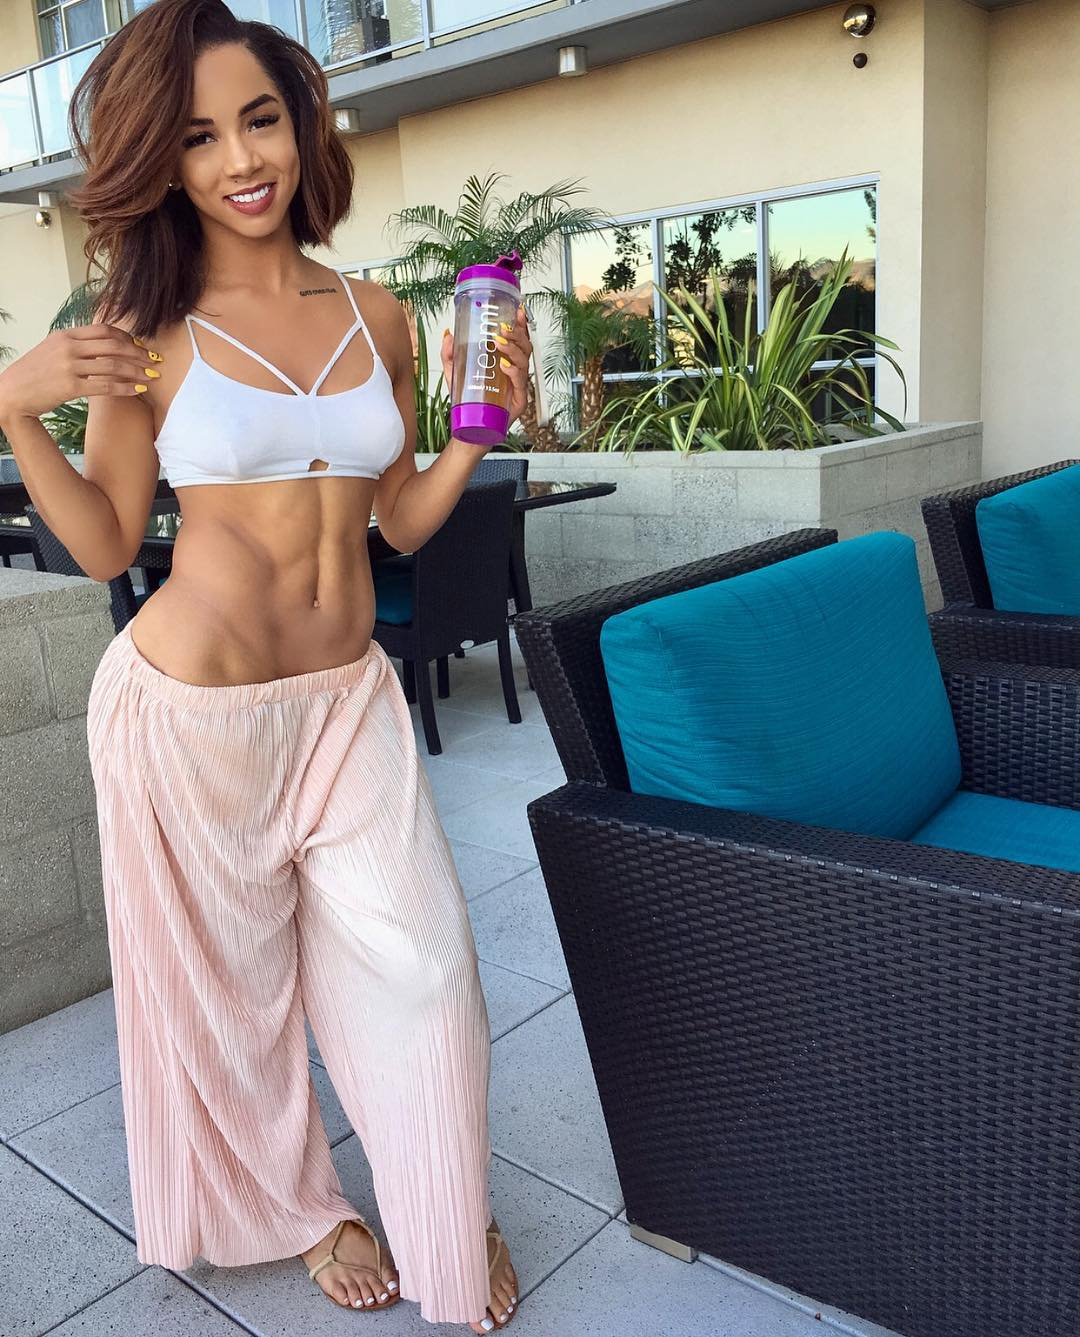 Gatas do Instagram #2: Brittany Renner